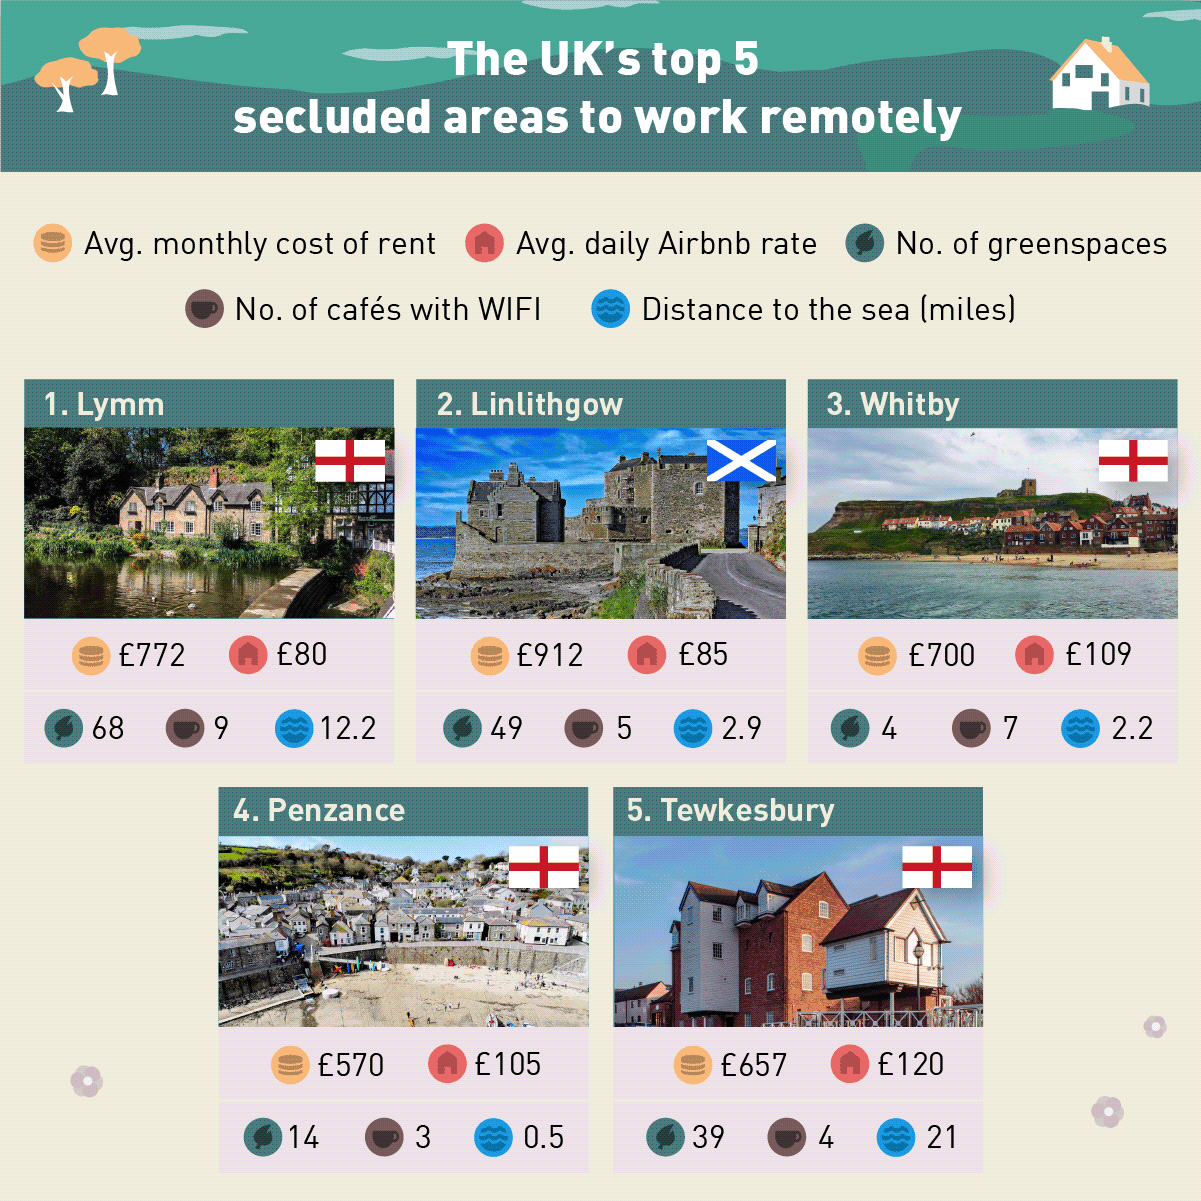 Most Secluded Areas in the UK<